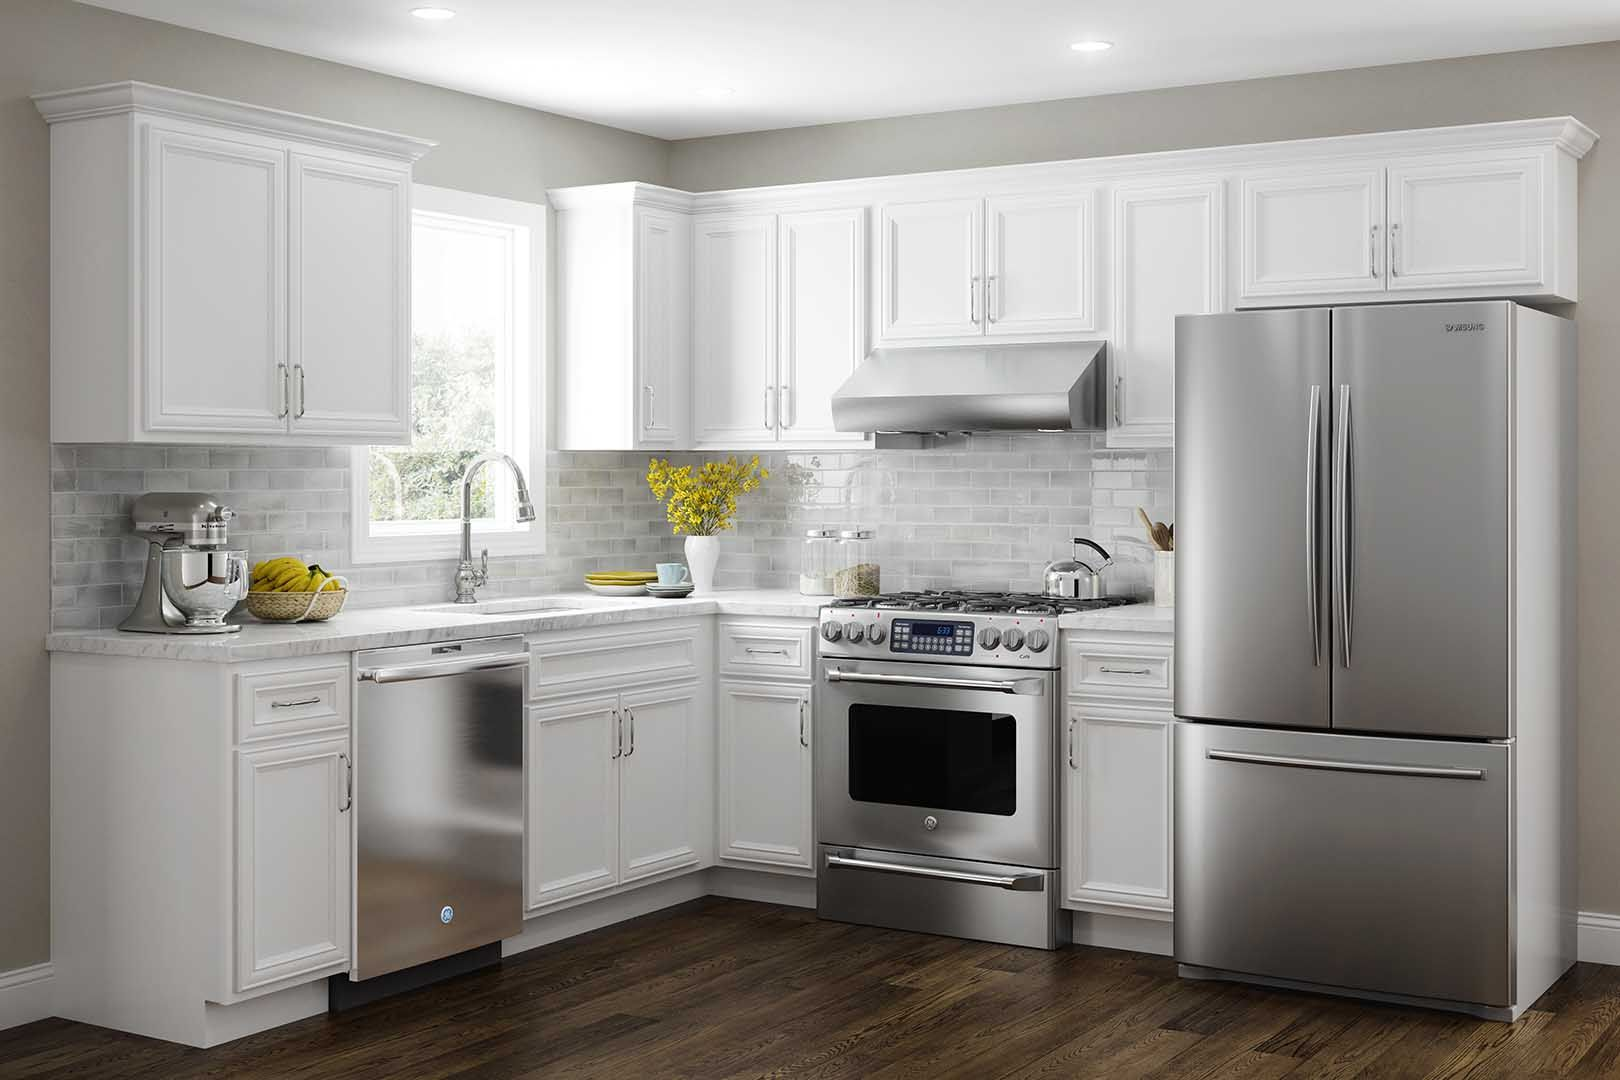 Kitchen Cabinets Kountry Cabinets Home Furnishings Diy Kitchen Remodel Small Kitchen Layouts Kitchen Layout